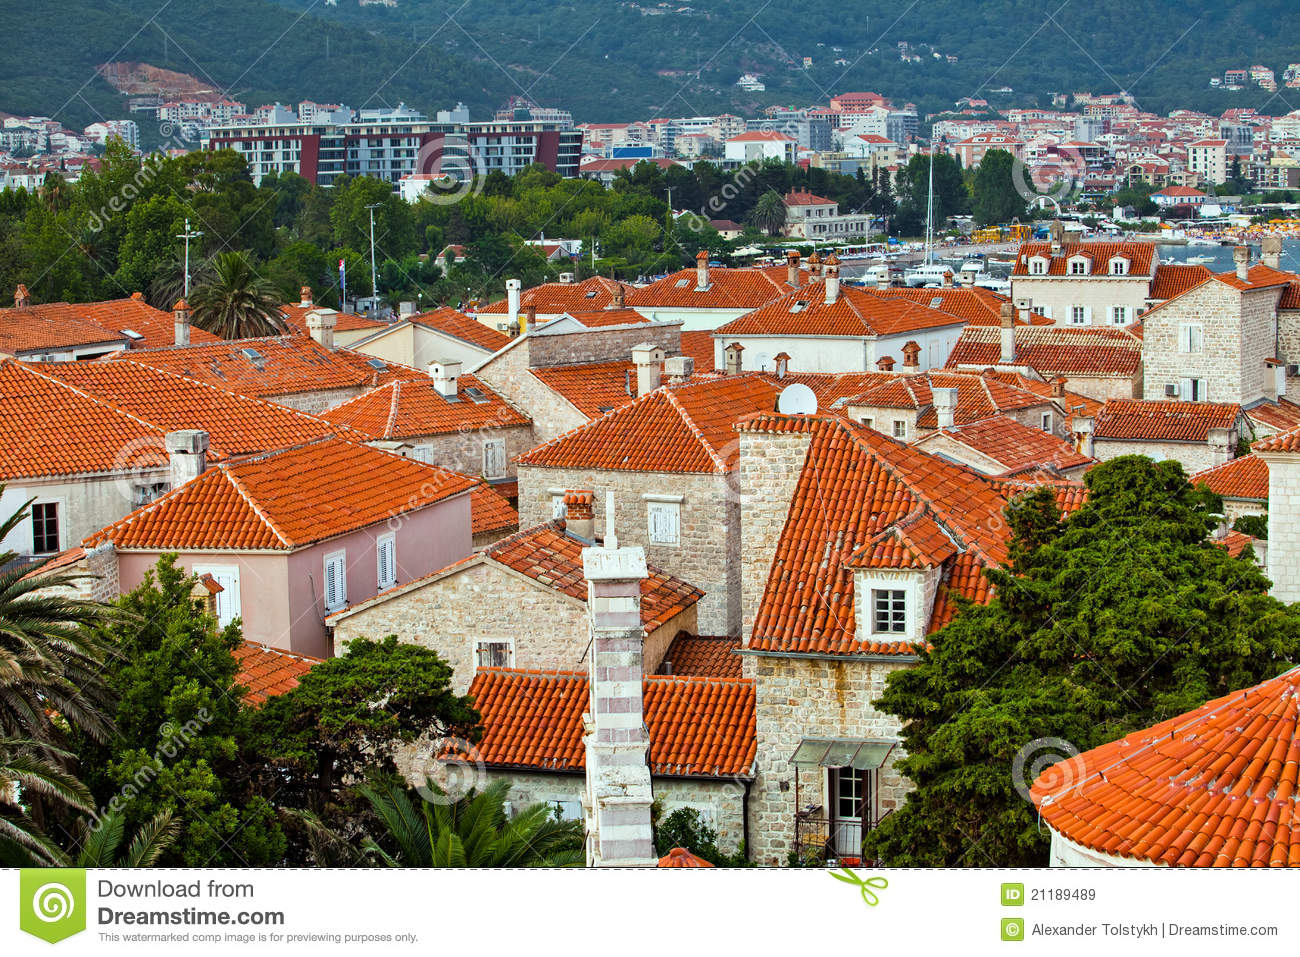 The roofs of old town Budva, Montenegro